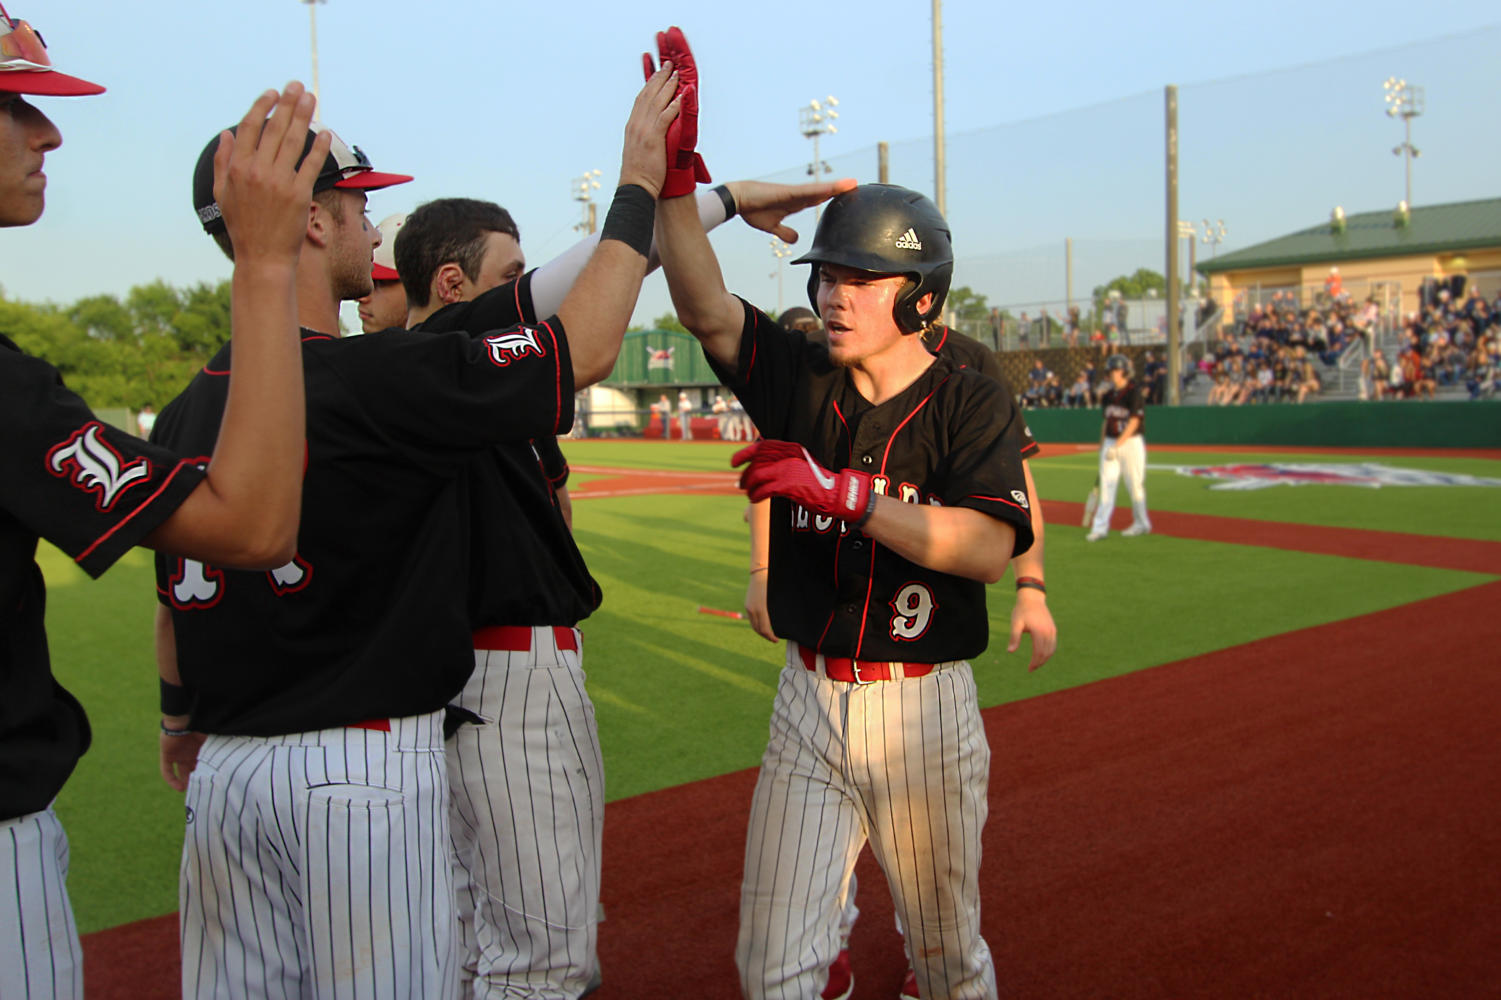 Senior+Jake+Terwilliger+is+greeted+by+junior+Ben+Nopper+after+a+successful+bat+in+the+fourth+inning.